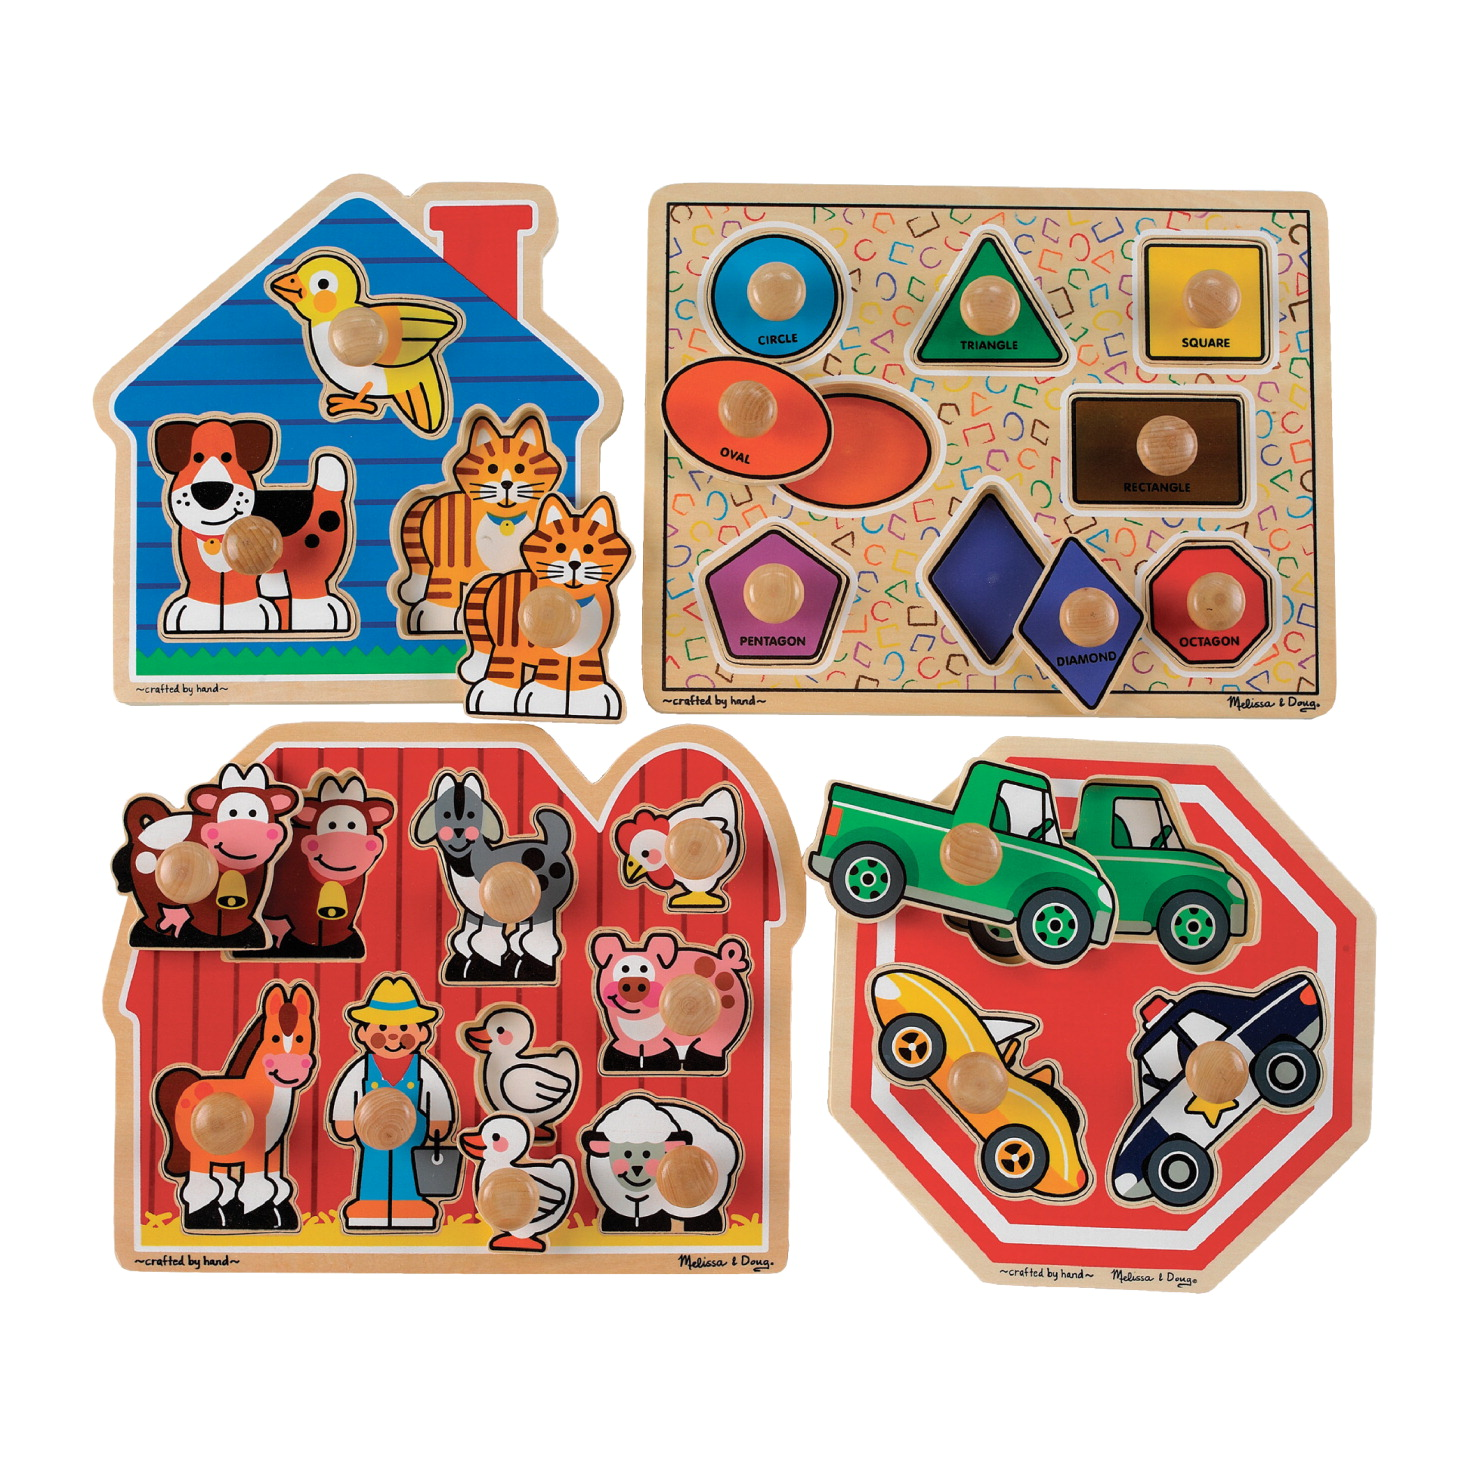 Childcraft Big Jumbo Knob Puzzles, 3 to 8 Pieces Each, Set of 4